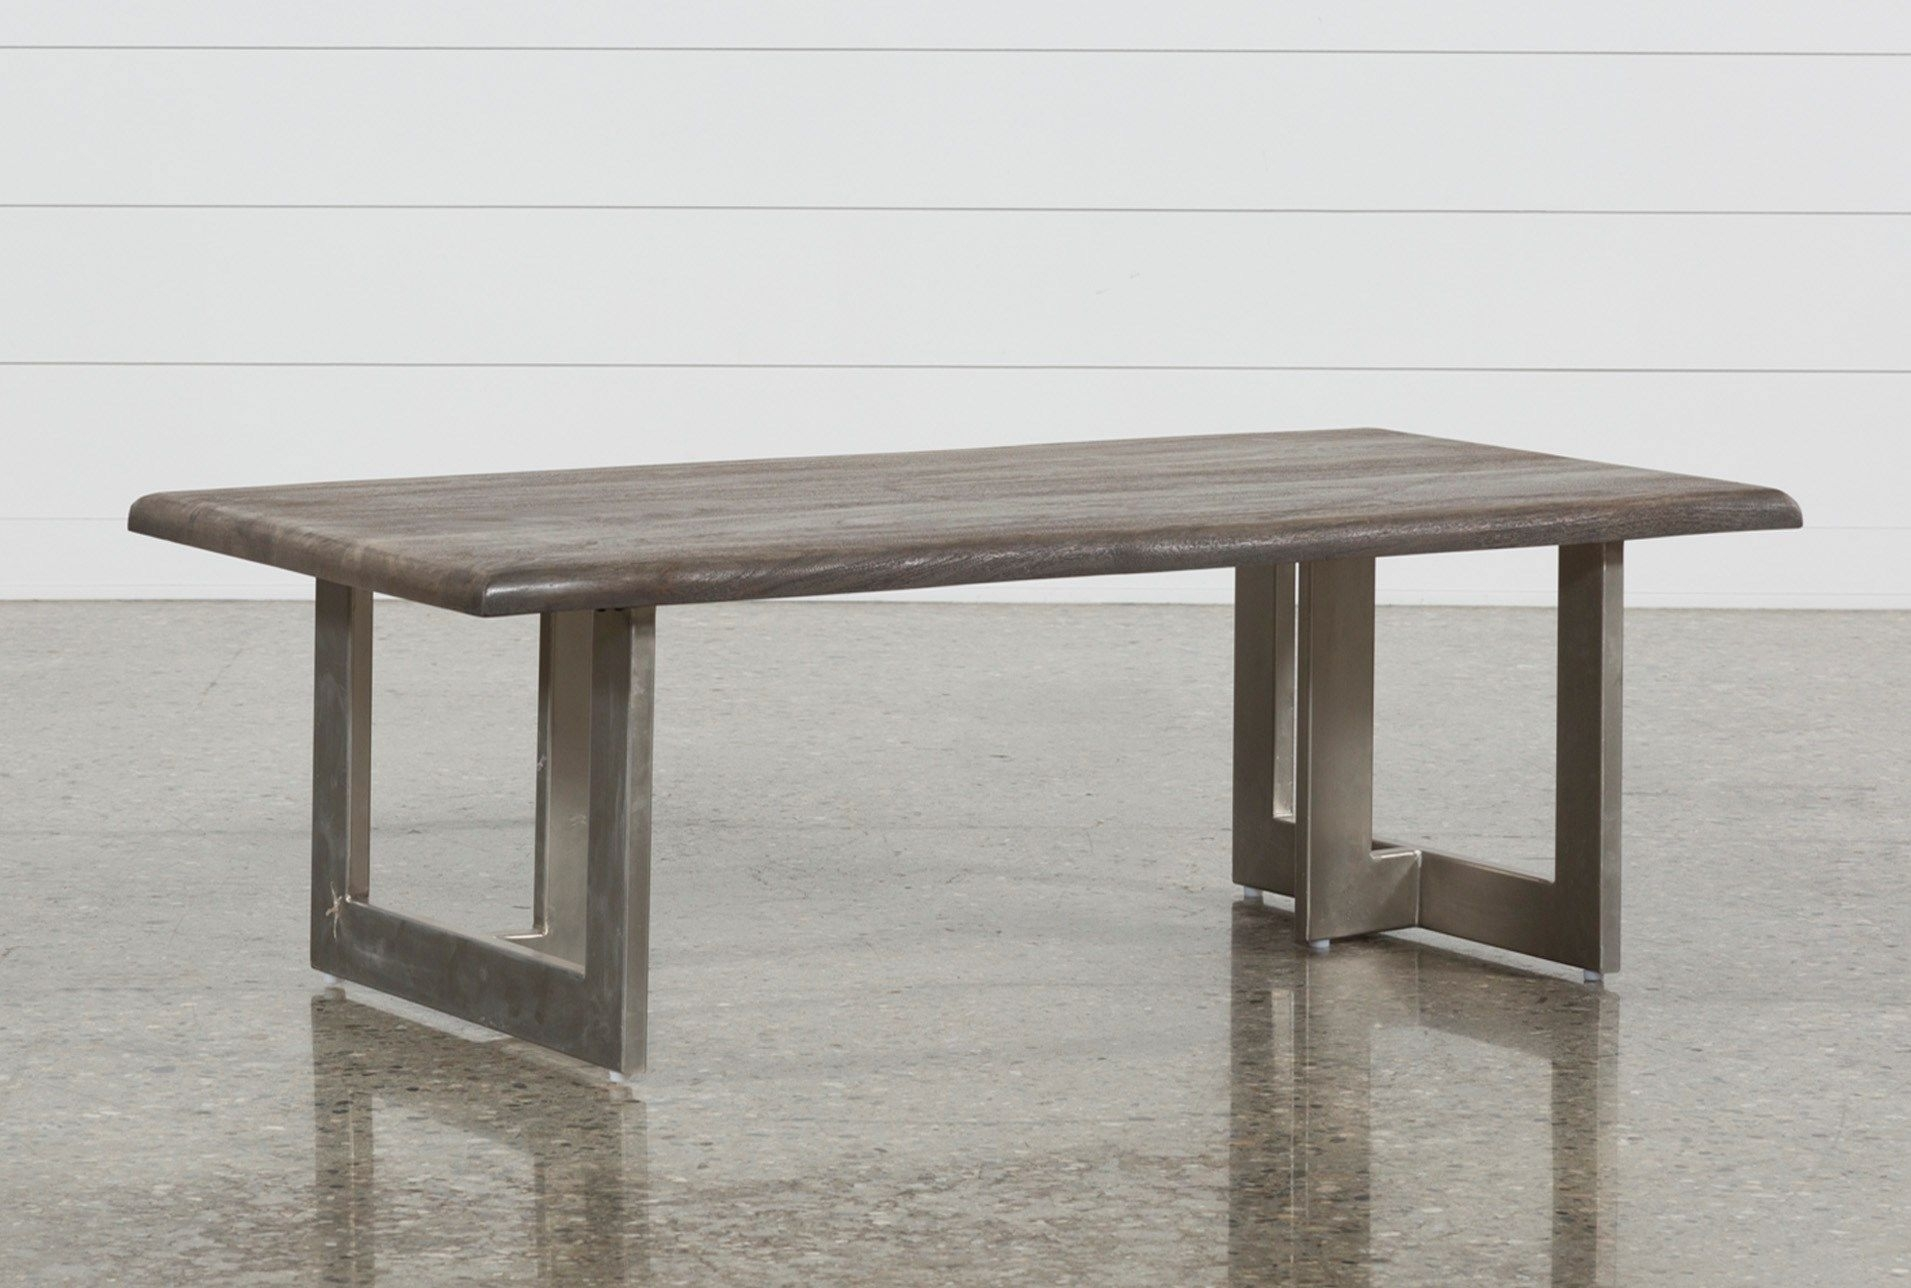 Portland Cocktail Table | Rr 2C (Industrial) | Pinterest Inside Best And Newest Candice Ii Extension Rectangle Dining Tables (View 17 of 20)